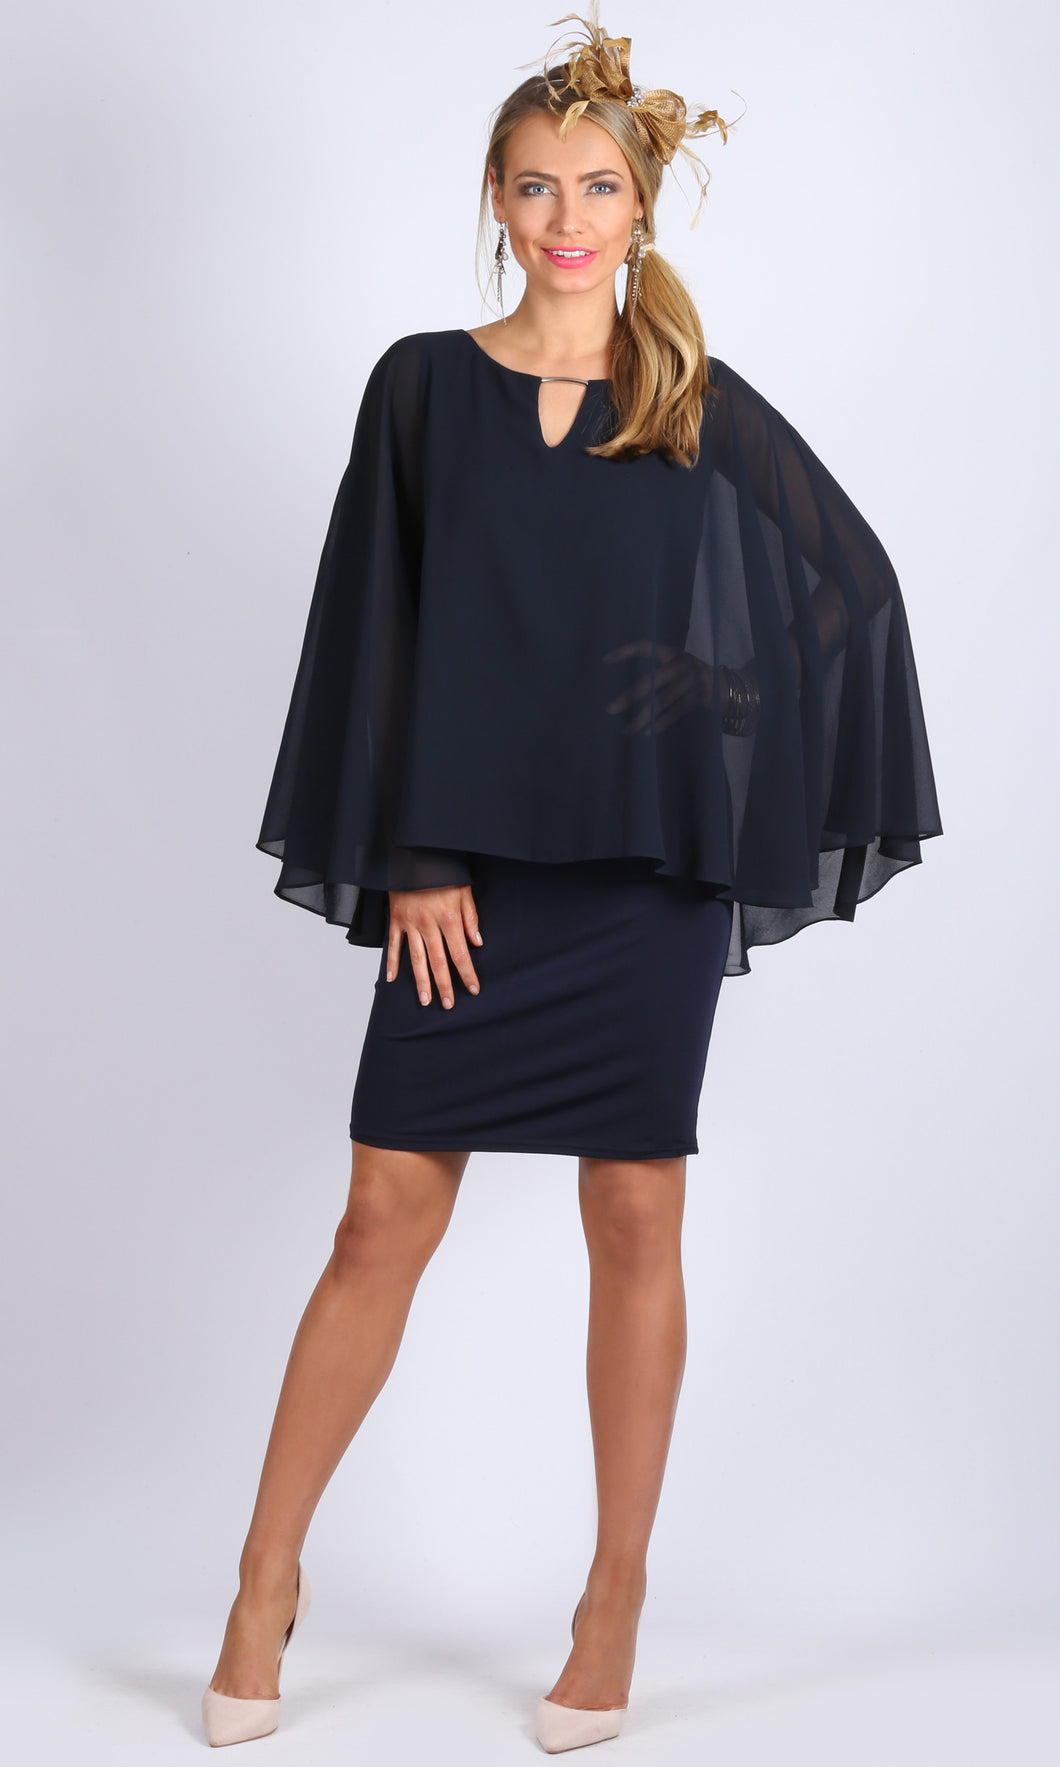 Chiffon Overlay Dress with Cut Out and Gold Accessory Neckline detail